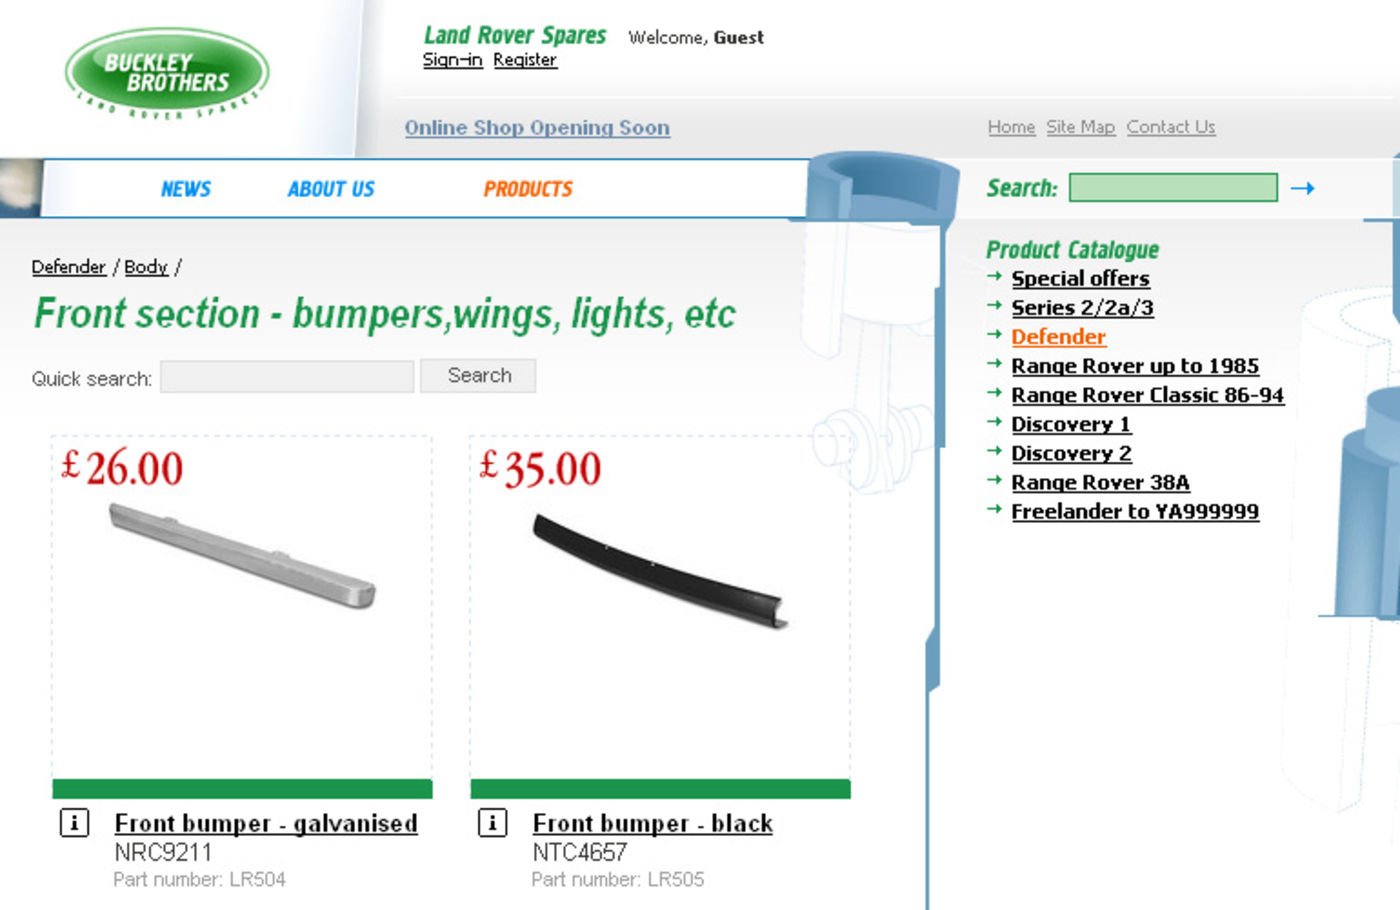 Land Rover Spares Products